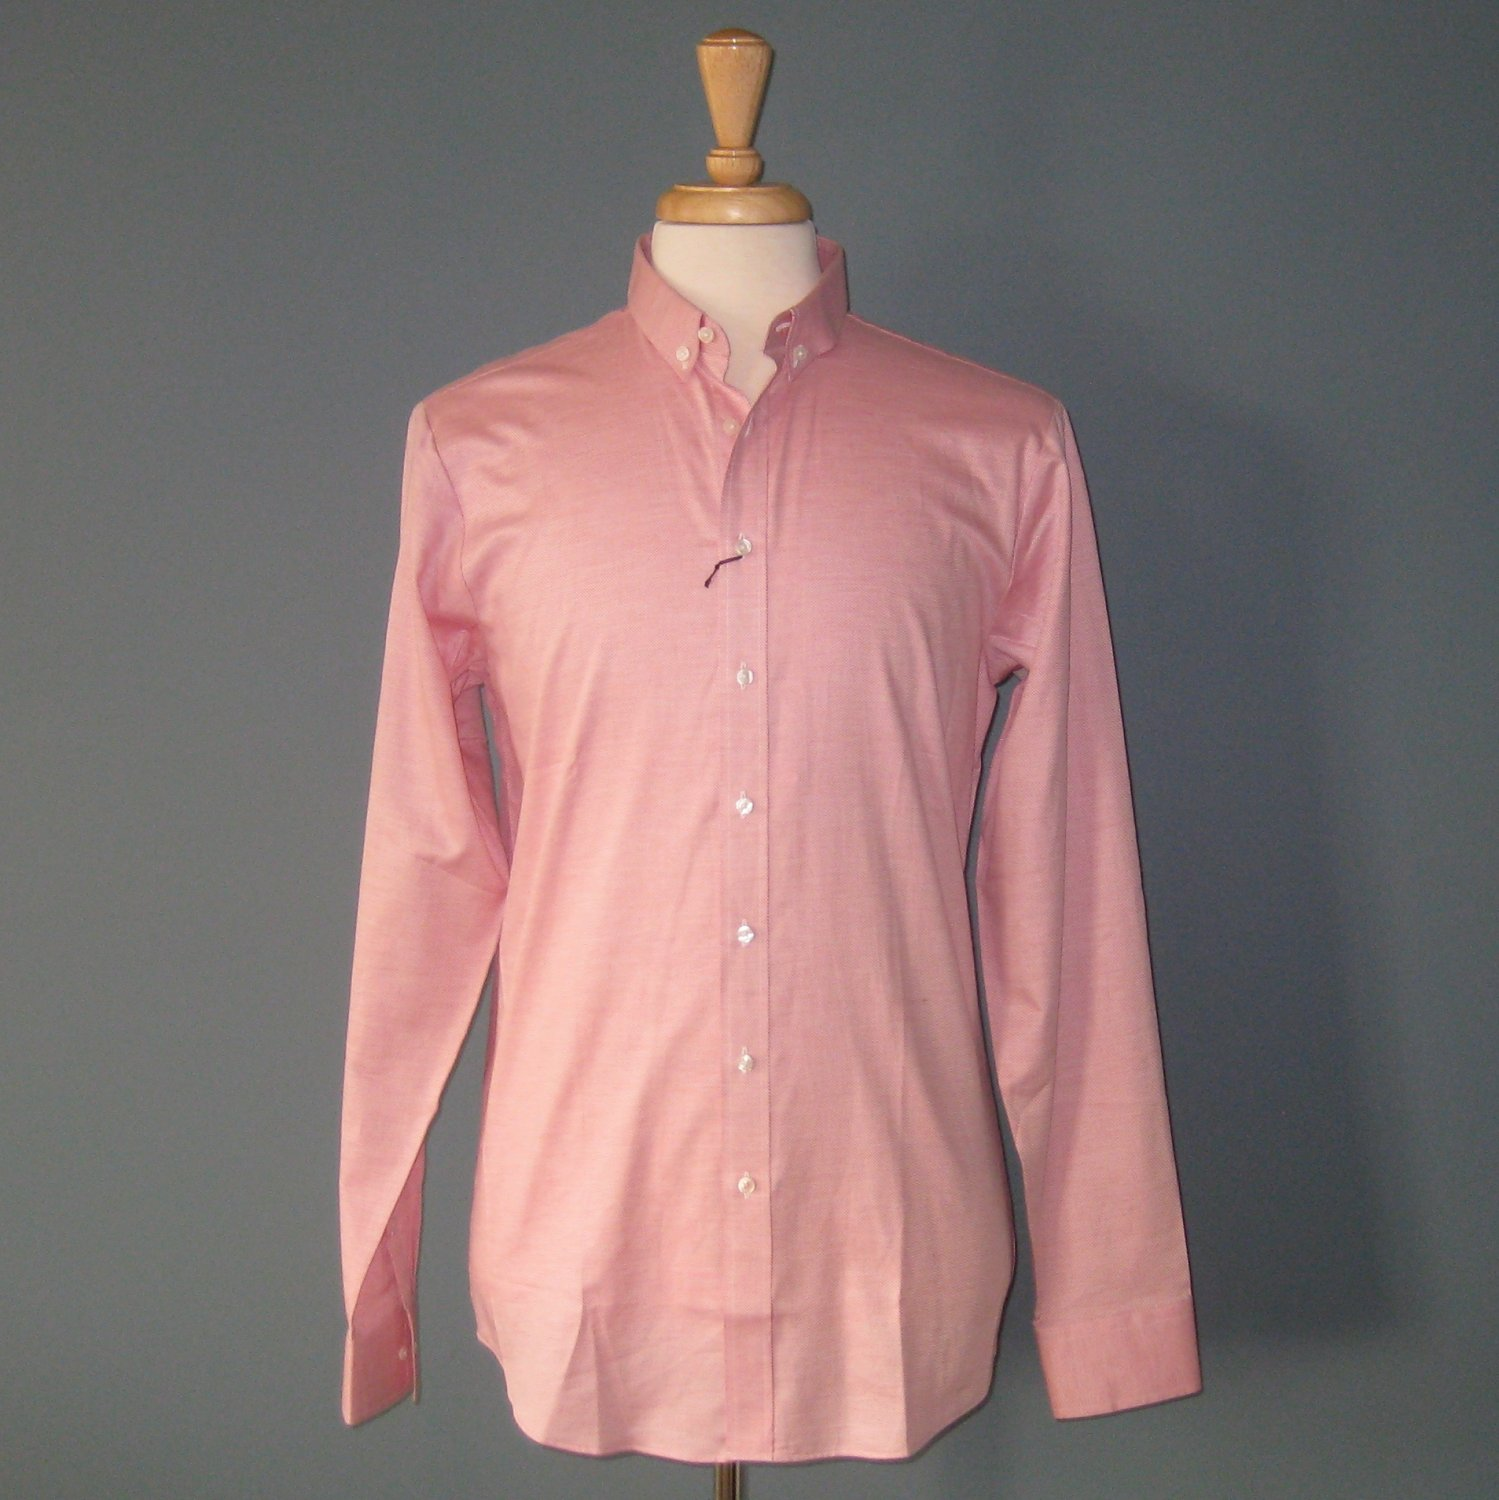 NWT Thomas Pink Pink L/S 100% Cotton Superfine Two Fold Oxford Dress Shirt - 16